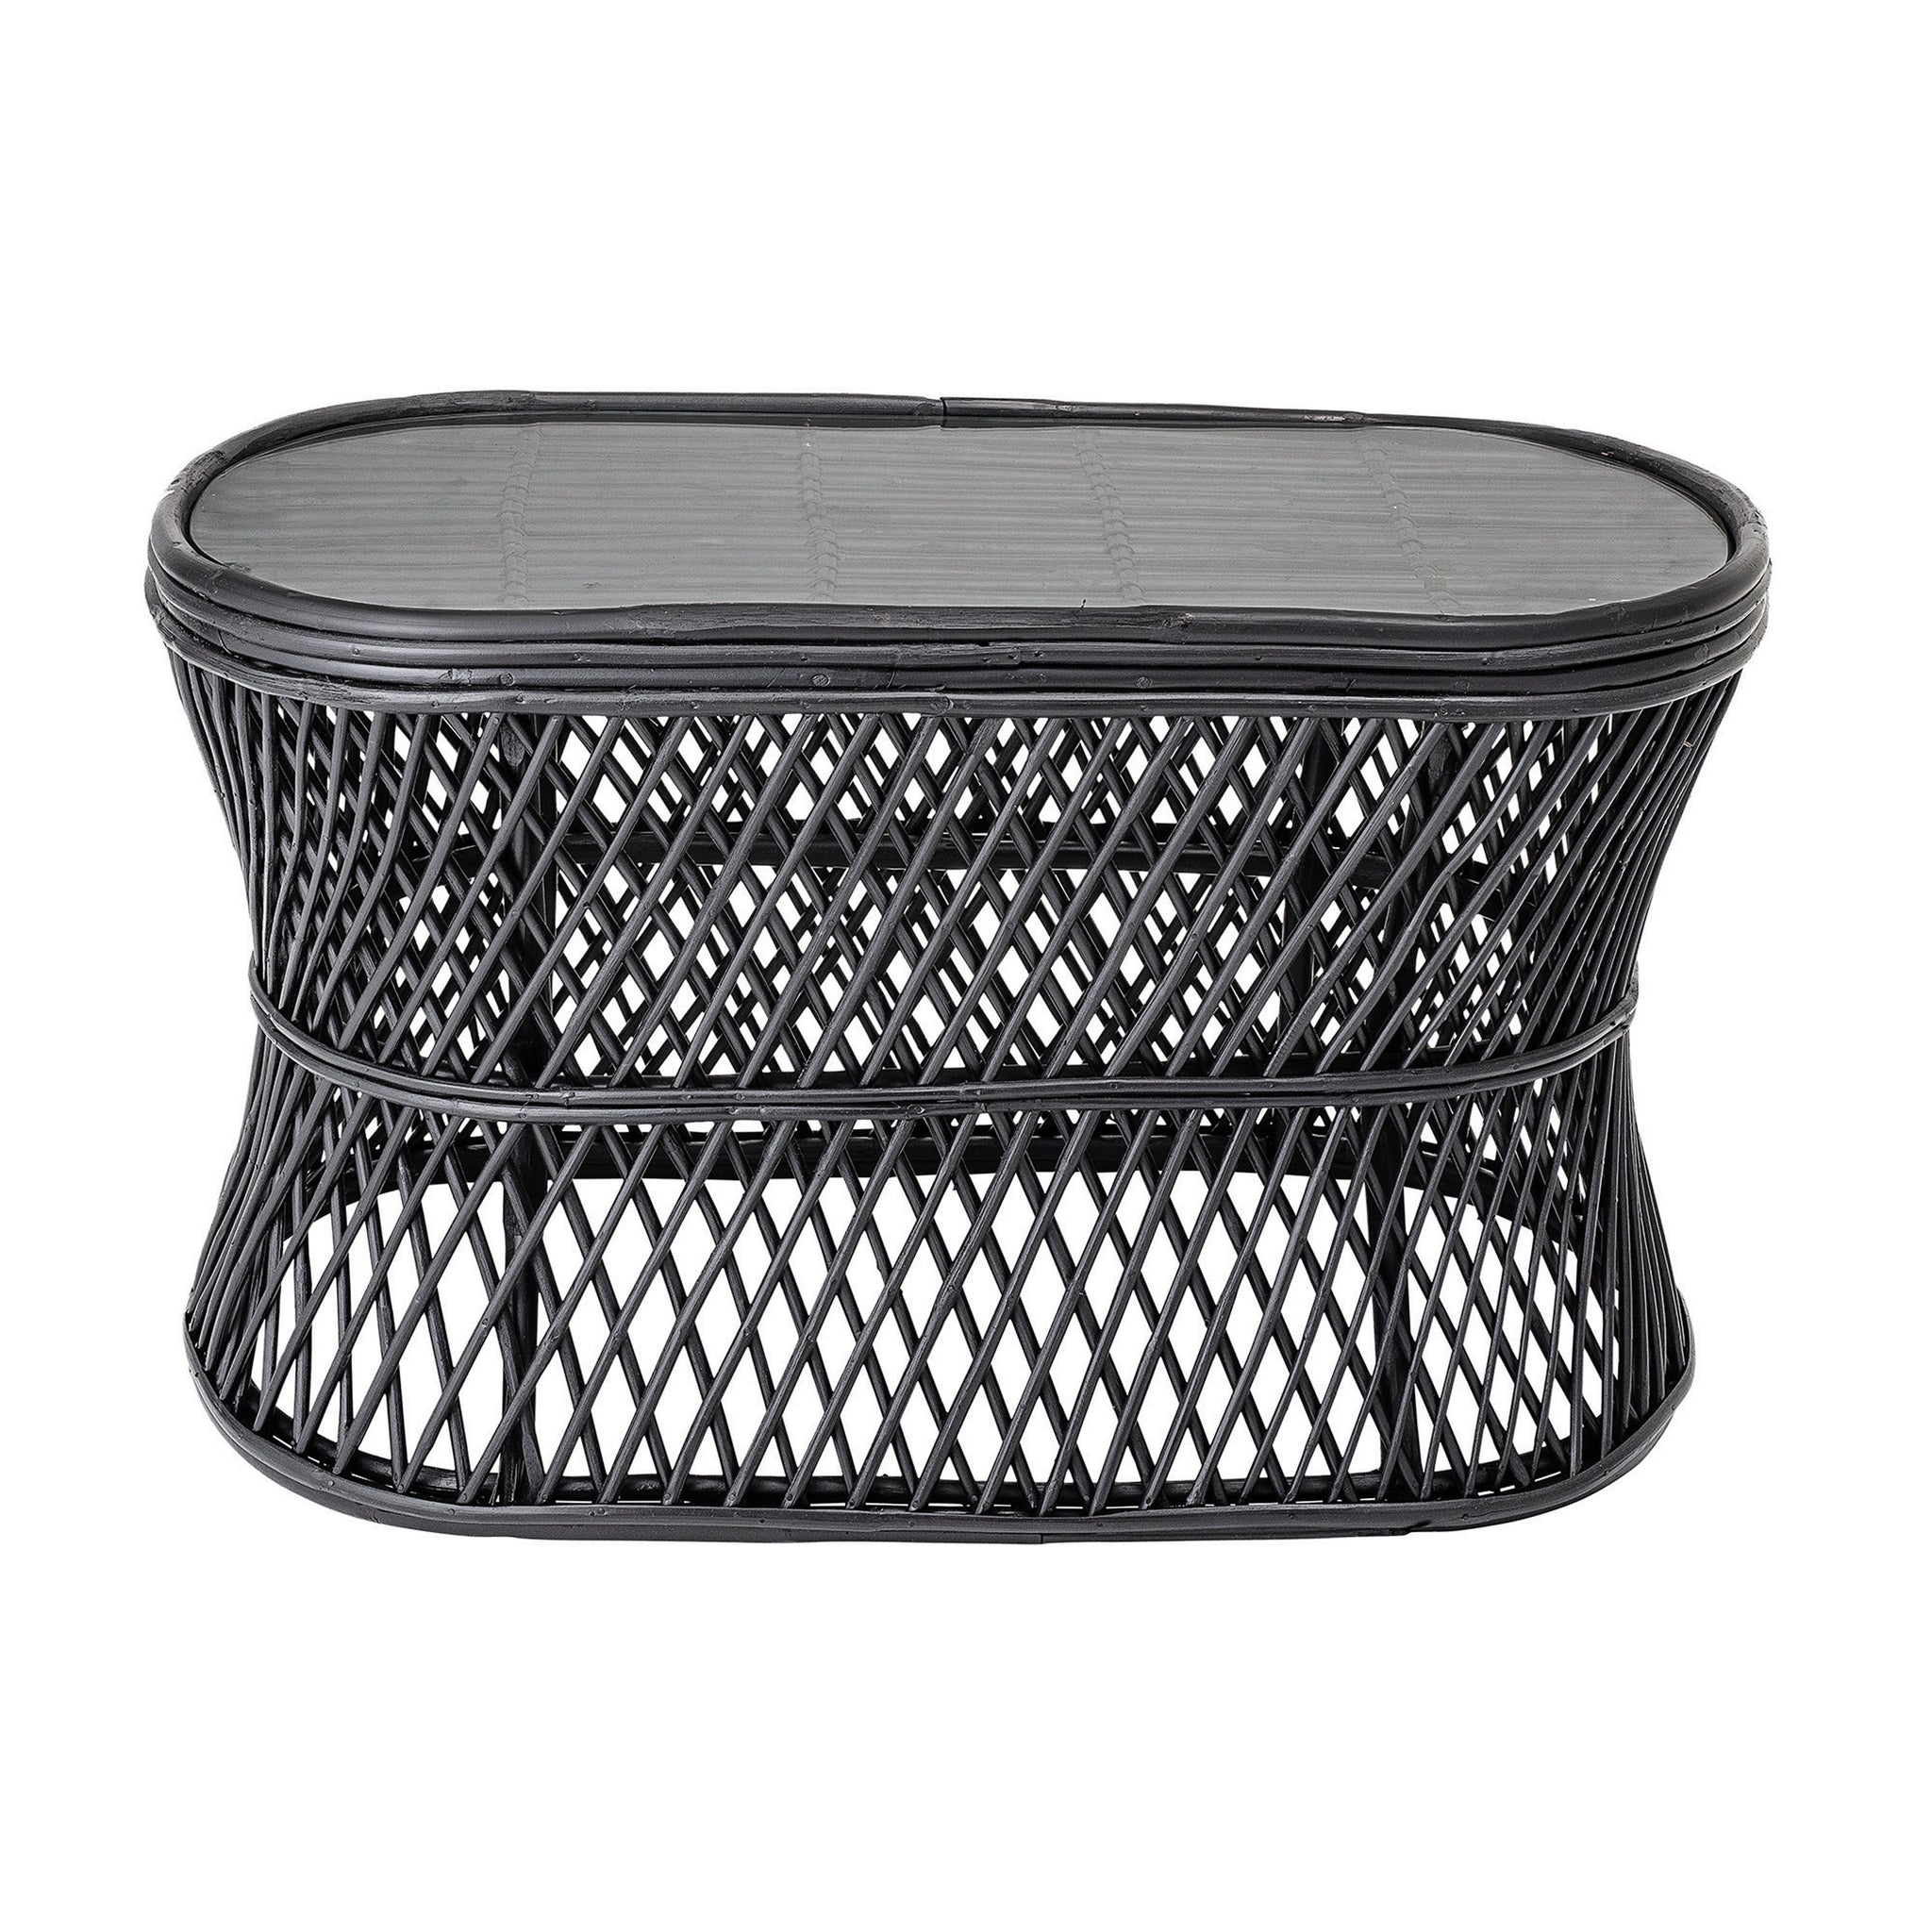 Oval Handwoven Black Rattan Table with Glass Top